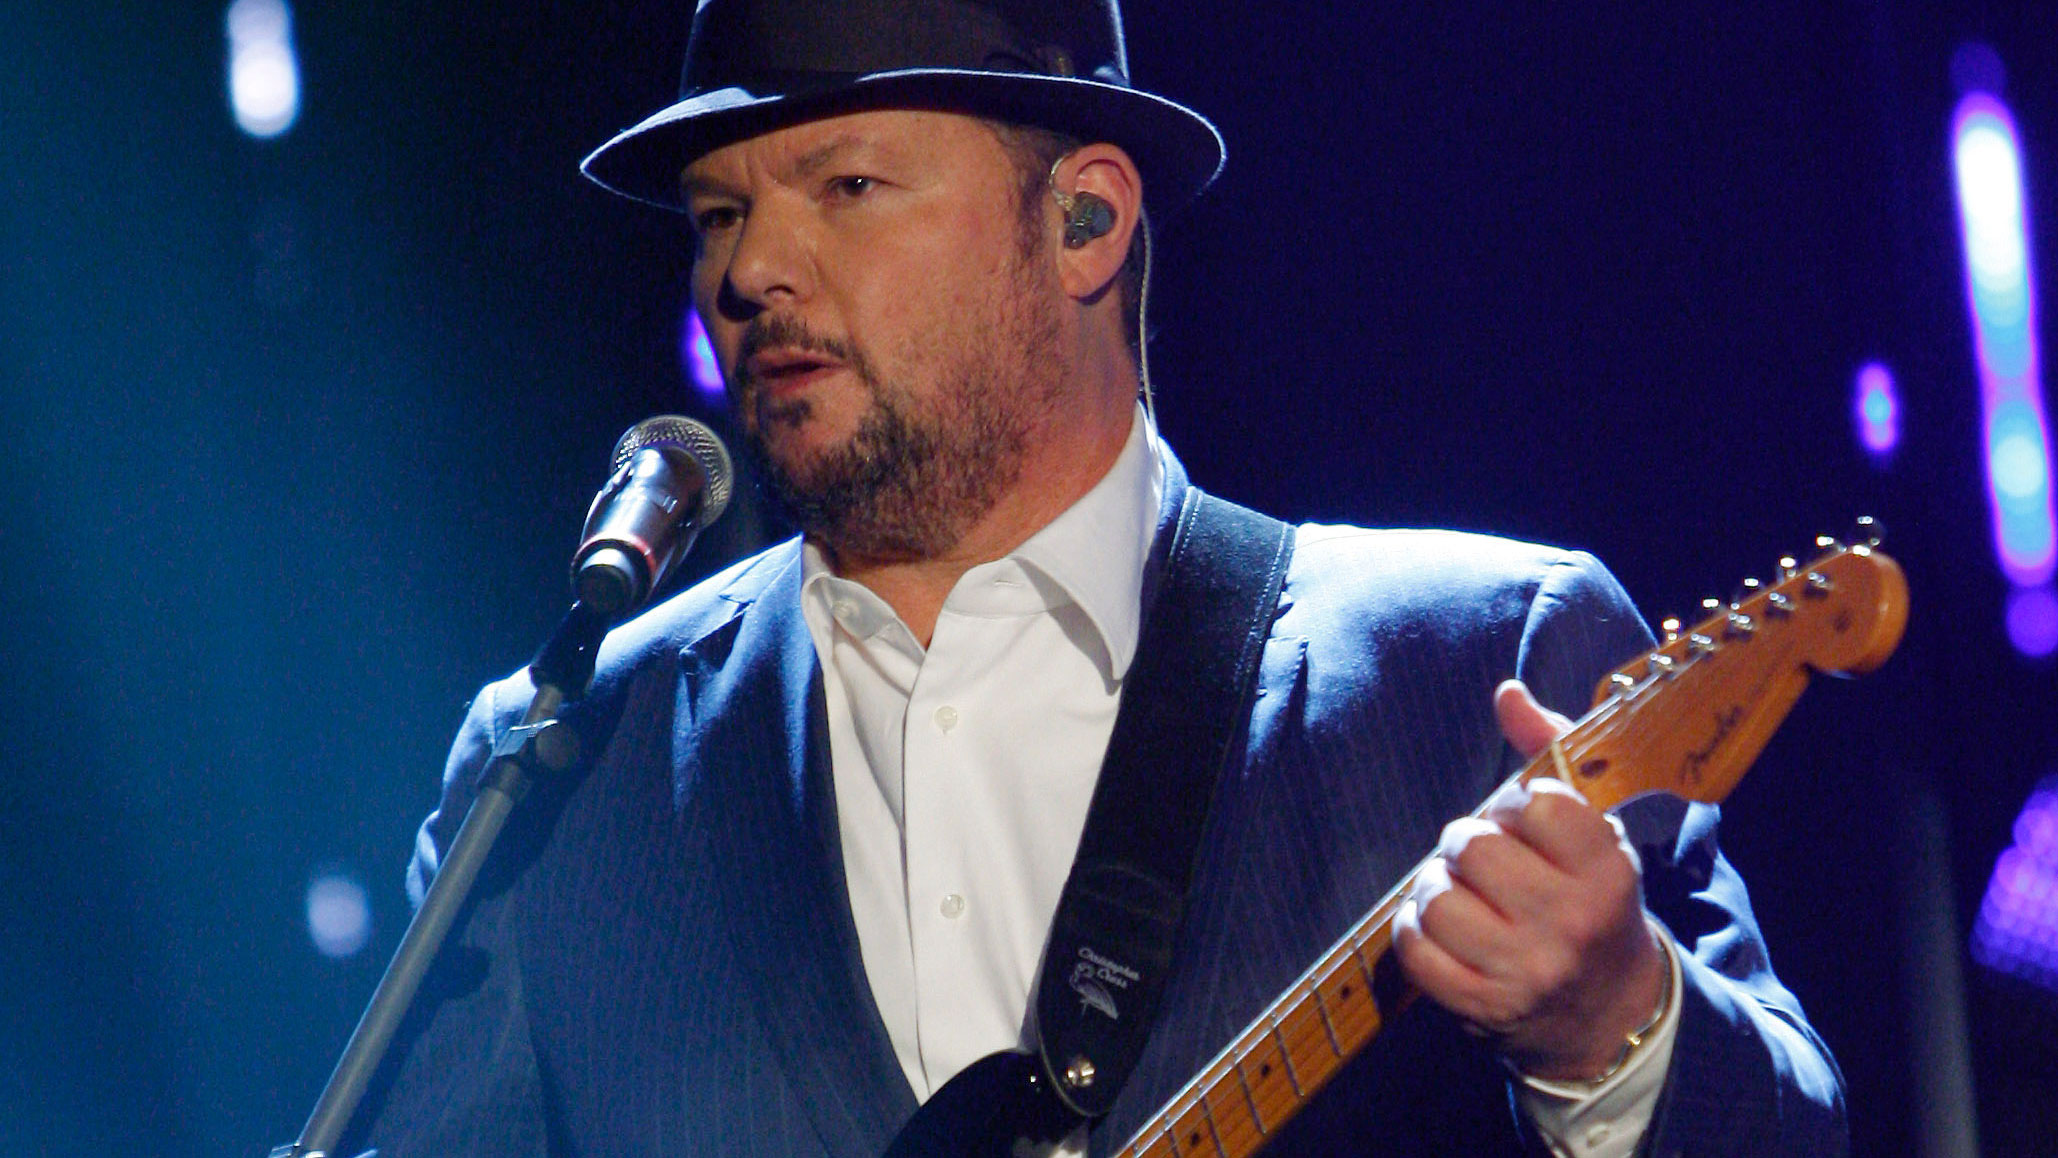 """Christopher Cross performs on the German TV game show """"Wetten Dass...?"""" in Offenburg, Germany on April 30, 2011."""